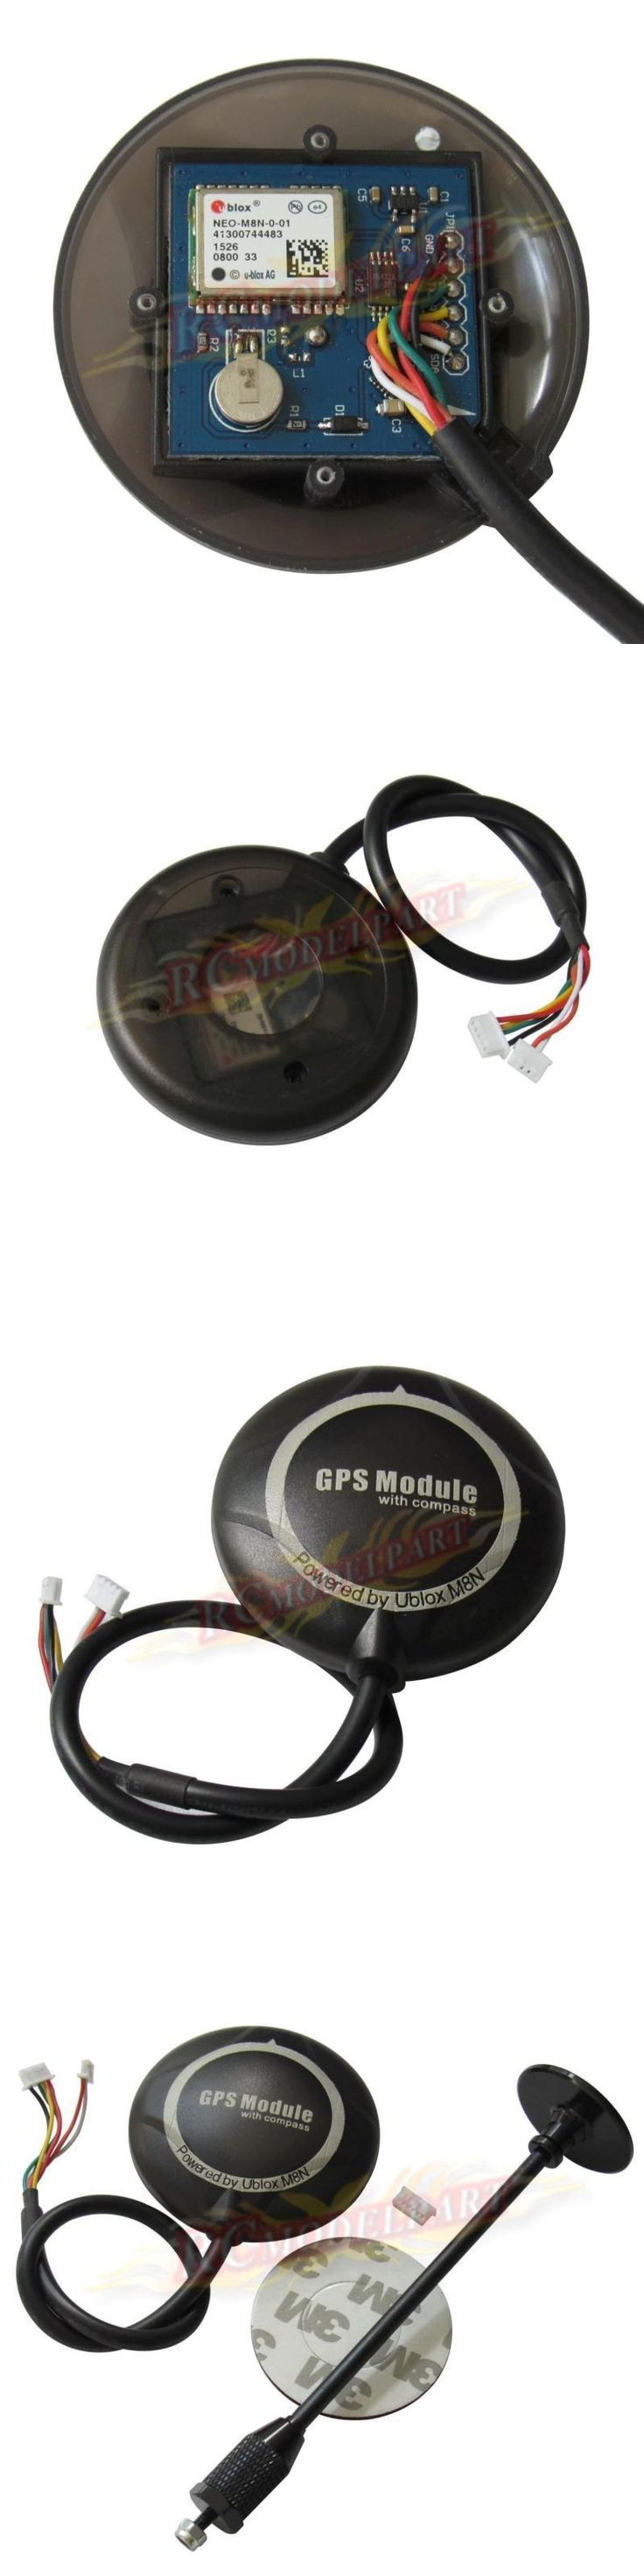 Ublox NEO-M8N Precision GPS Module Built-in Compass +GPS Bracket Holder for APM2.8 APM2.6 Pixhawk Flight